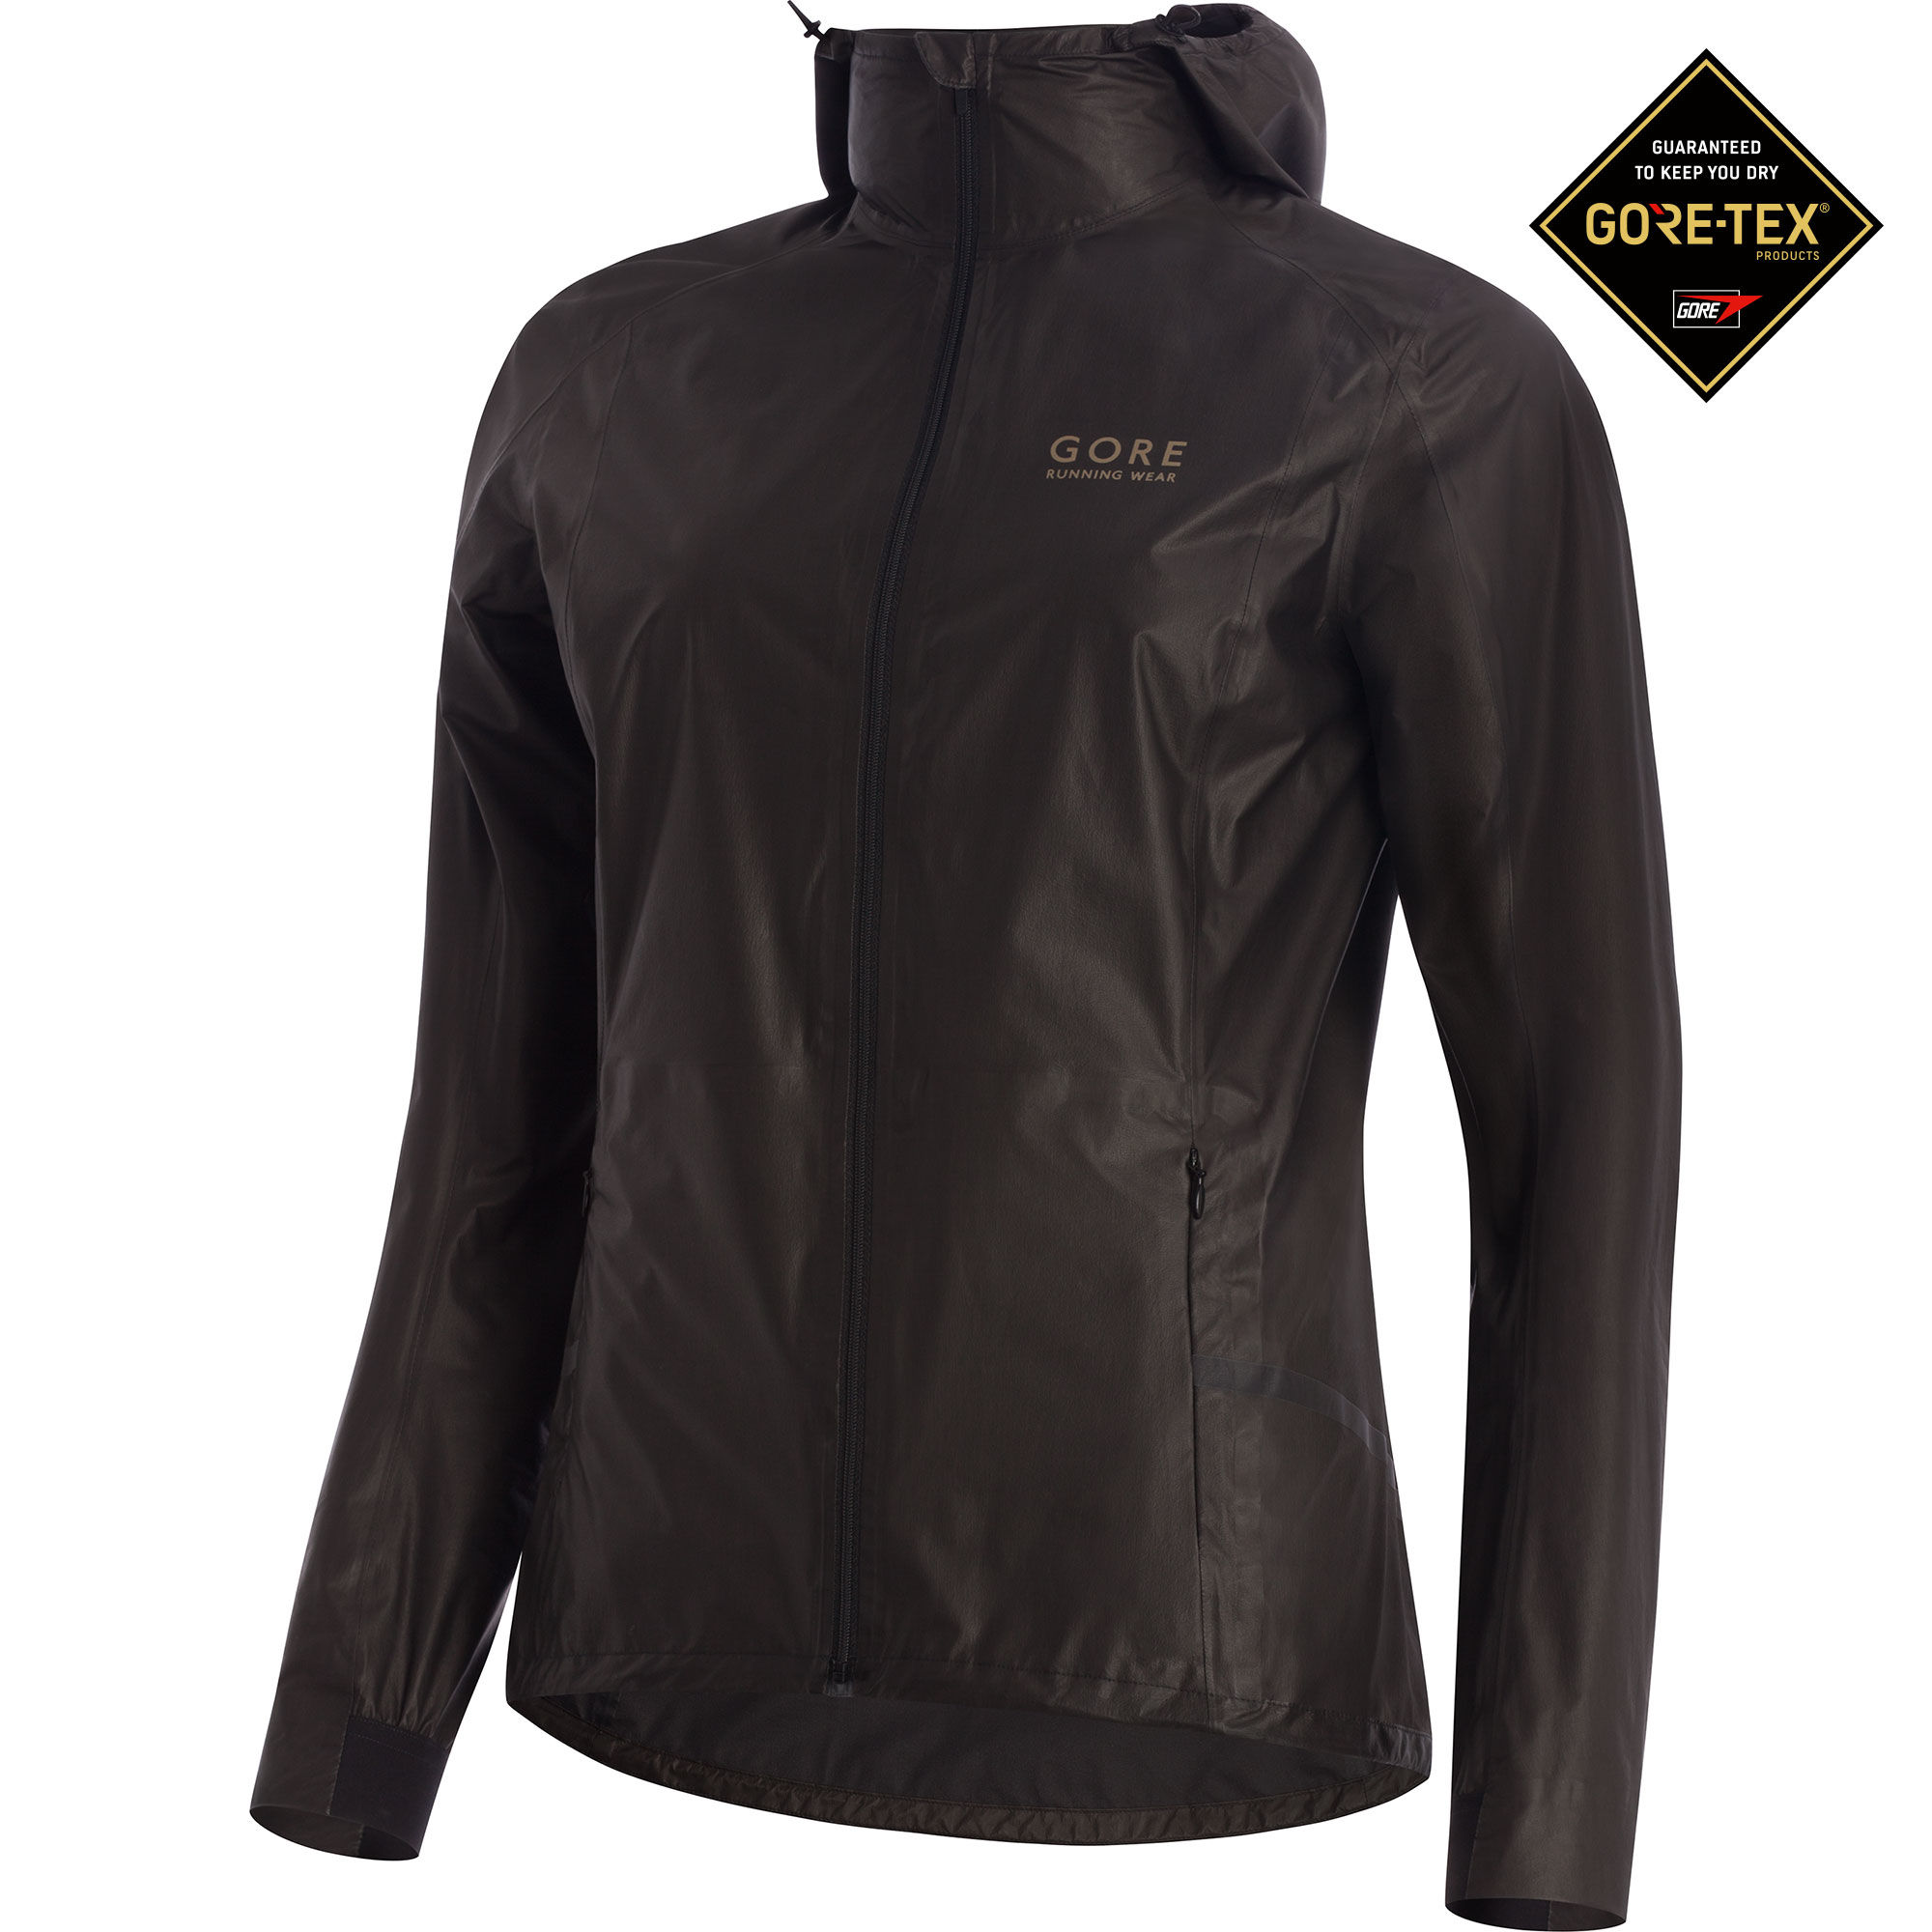 Gore One Lady GTX Active Run Jacket in Schwarz